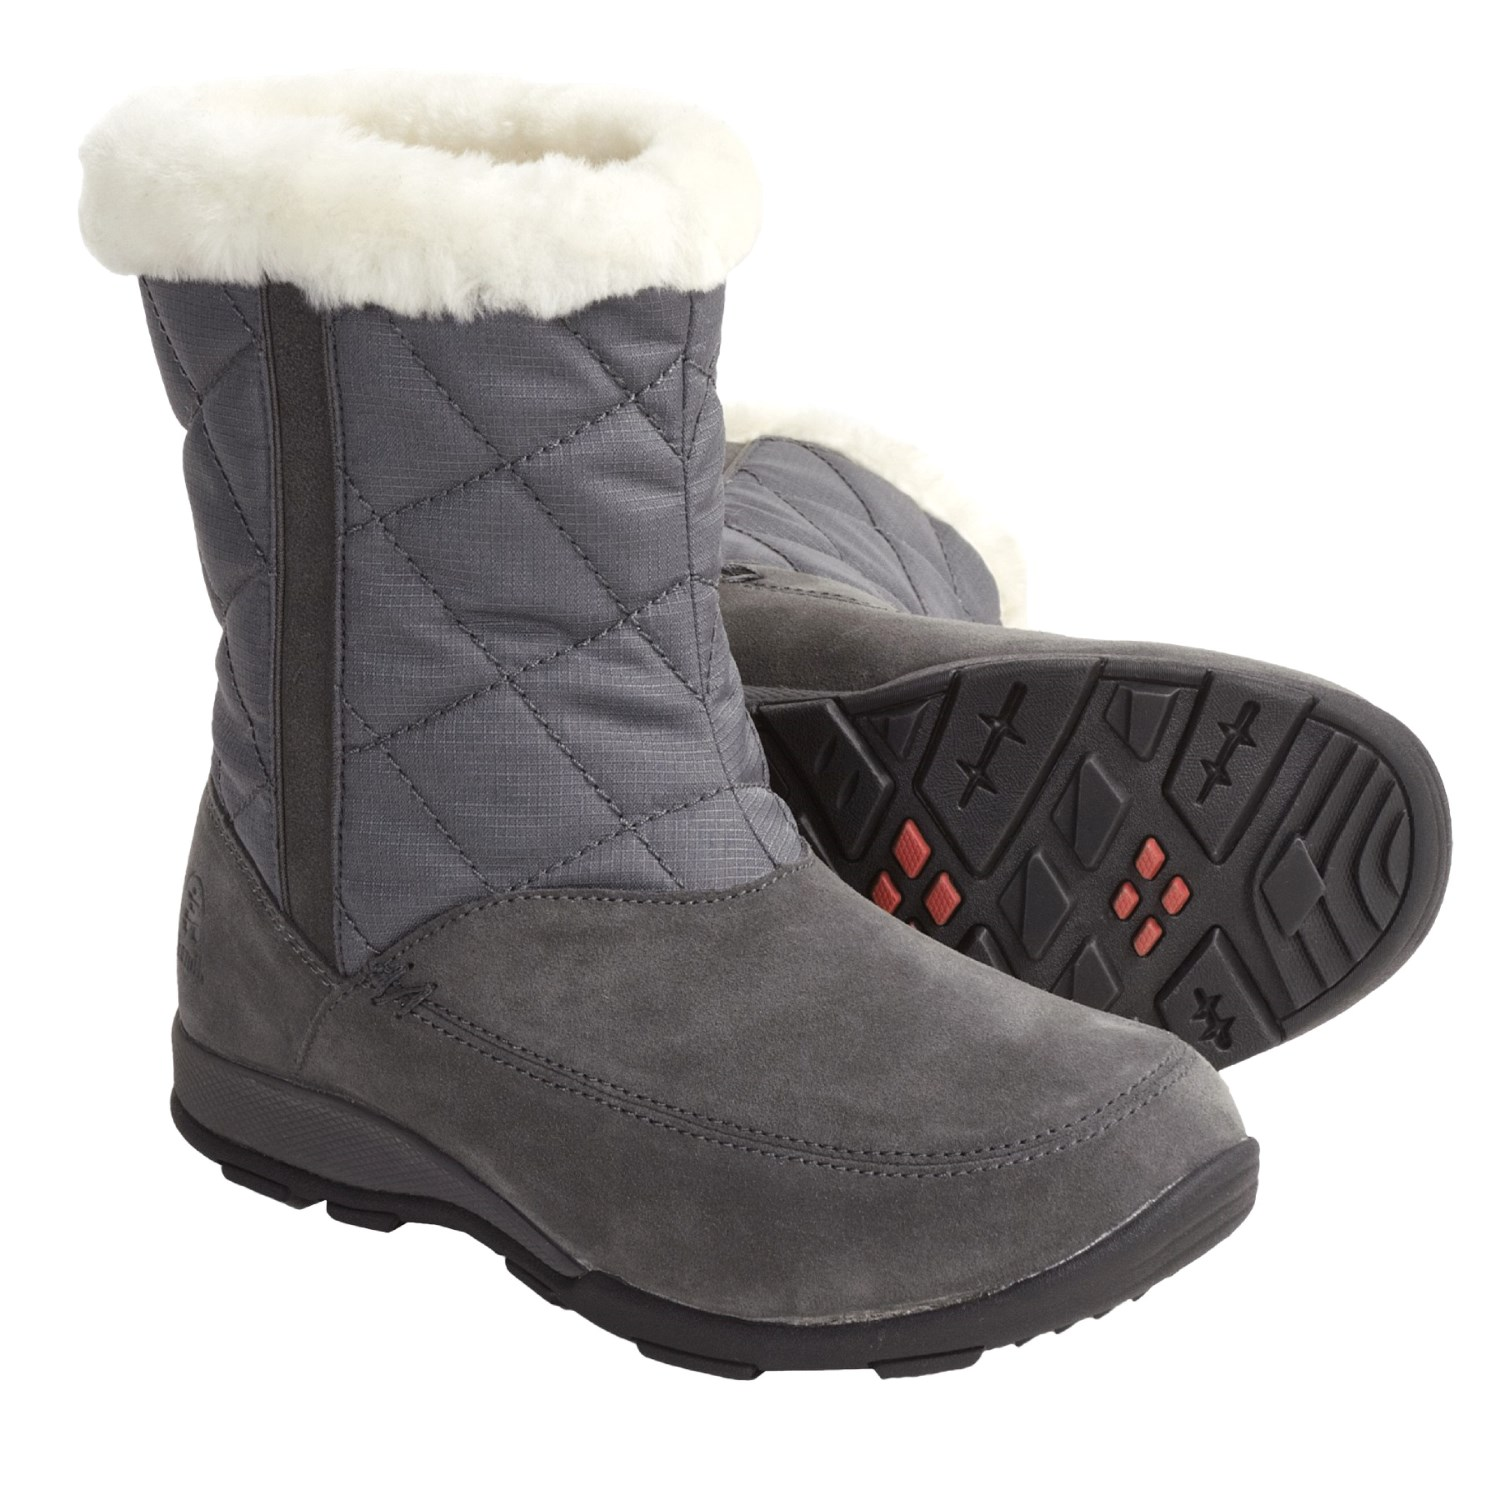 New  Shoes  Winter Amp Snow Boots  Women39s Merrell Dewbrook Zip WATERP